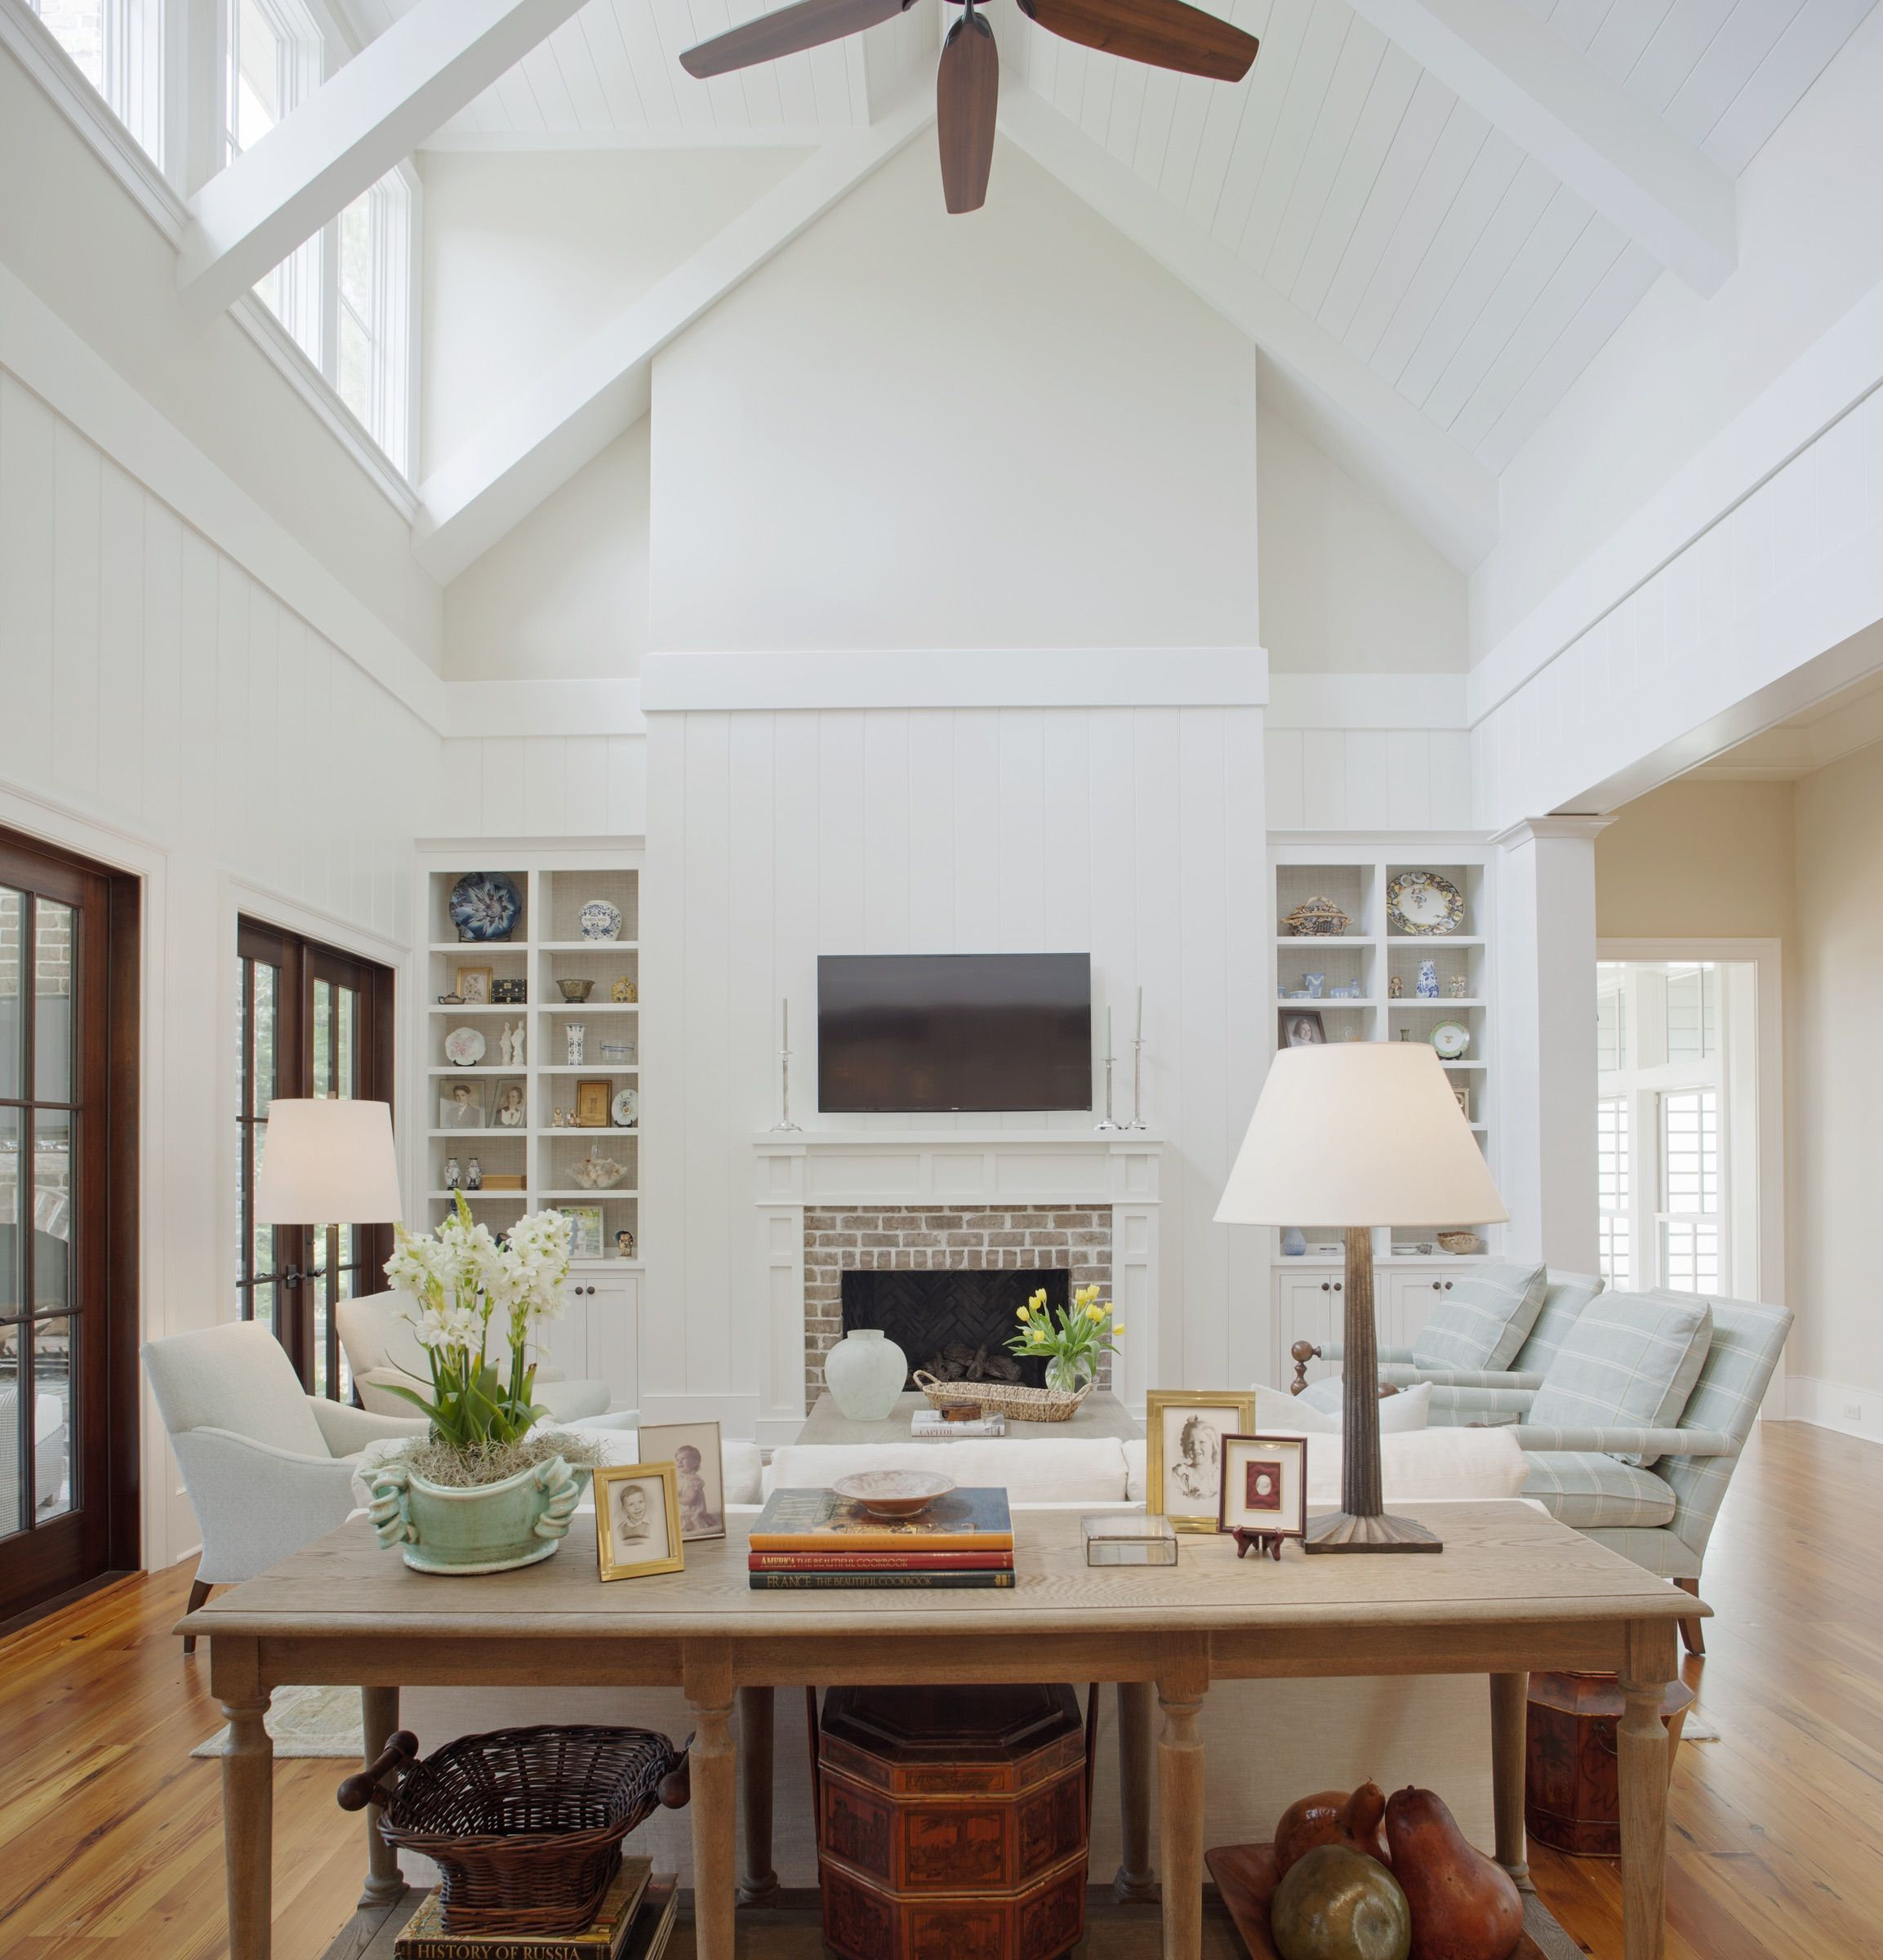 Palmetto Bluff Living Room: Pearce Scott Architects | For the Home ...